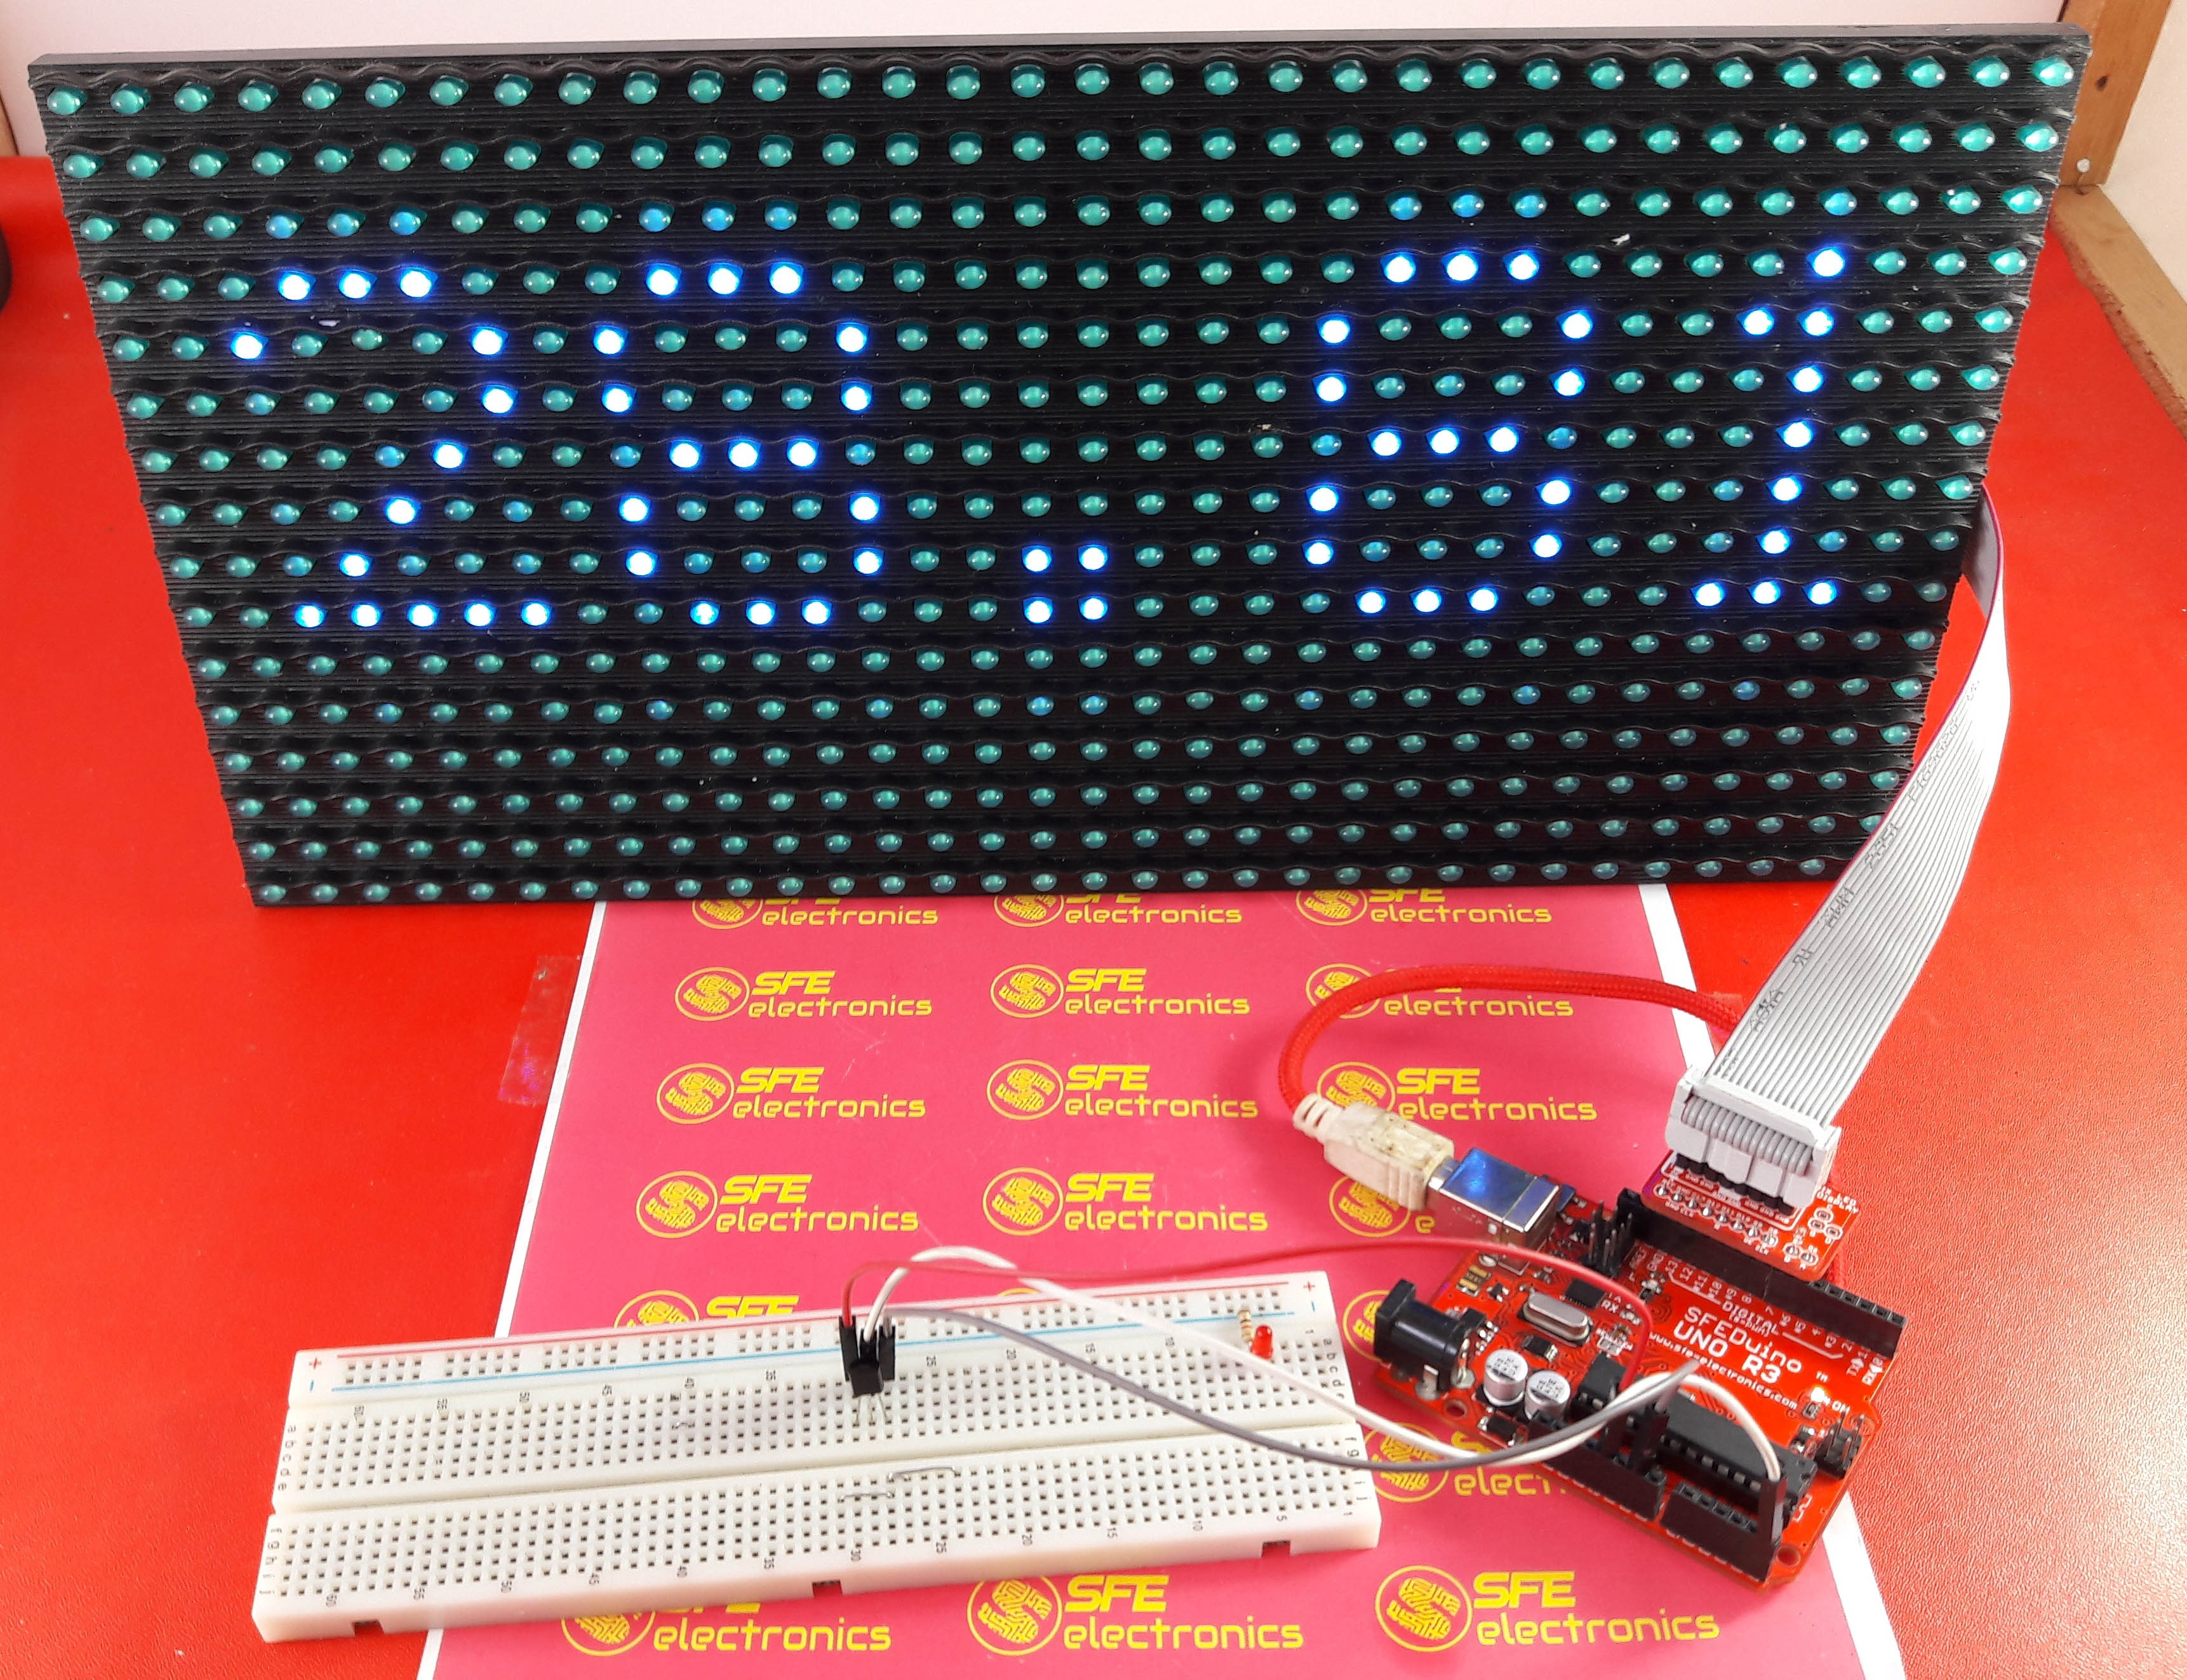 Picture of Display Temperature on P10 LED Display Module Using Arduino